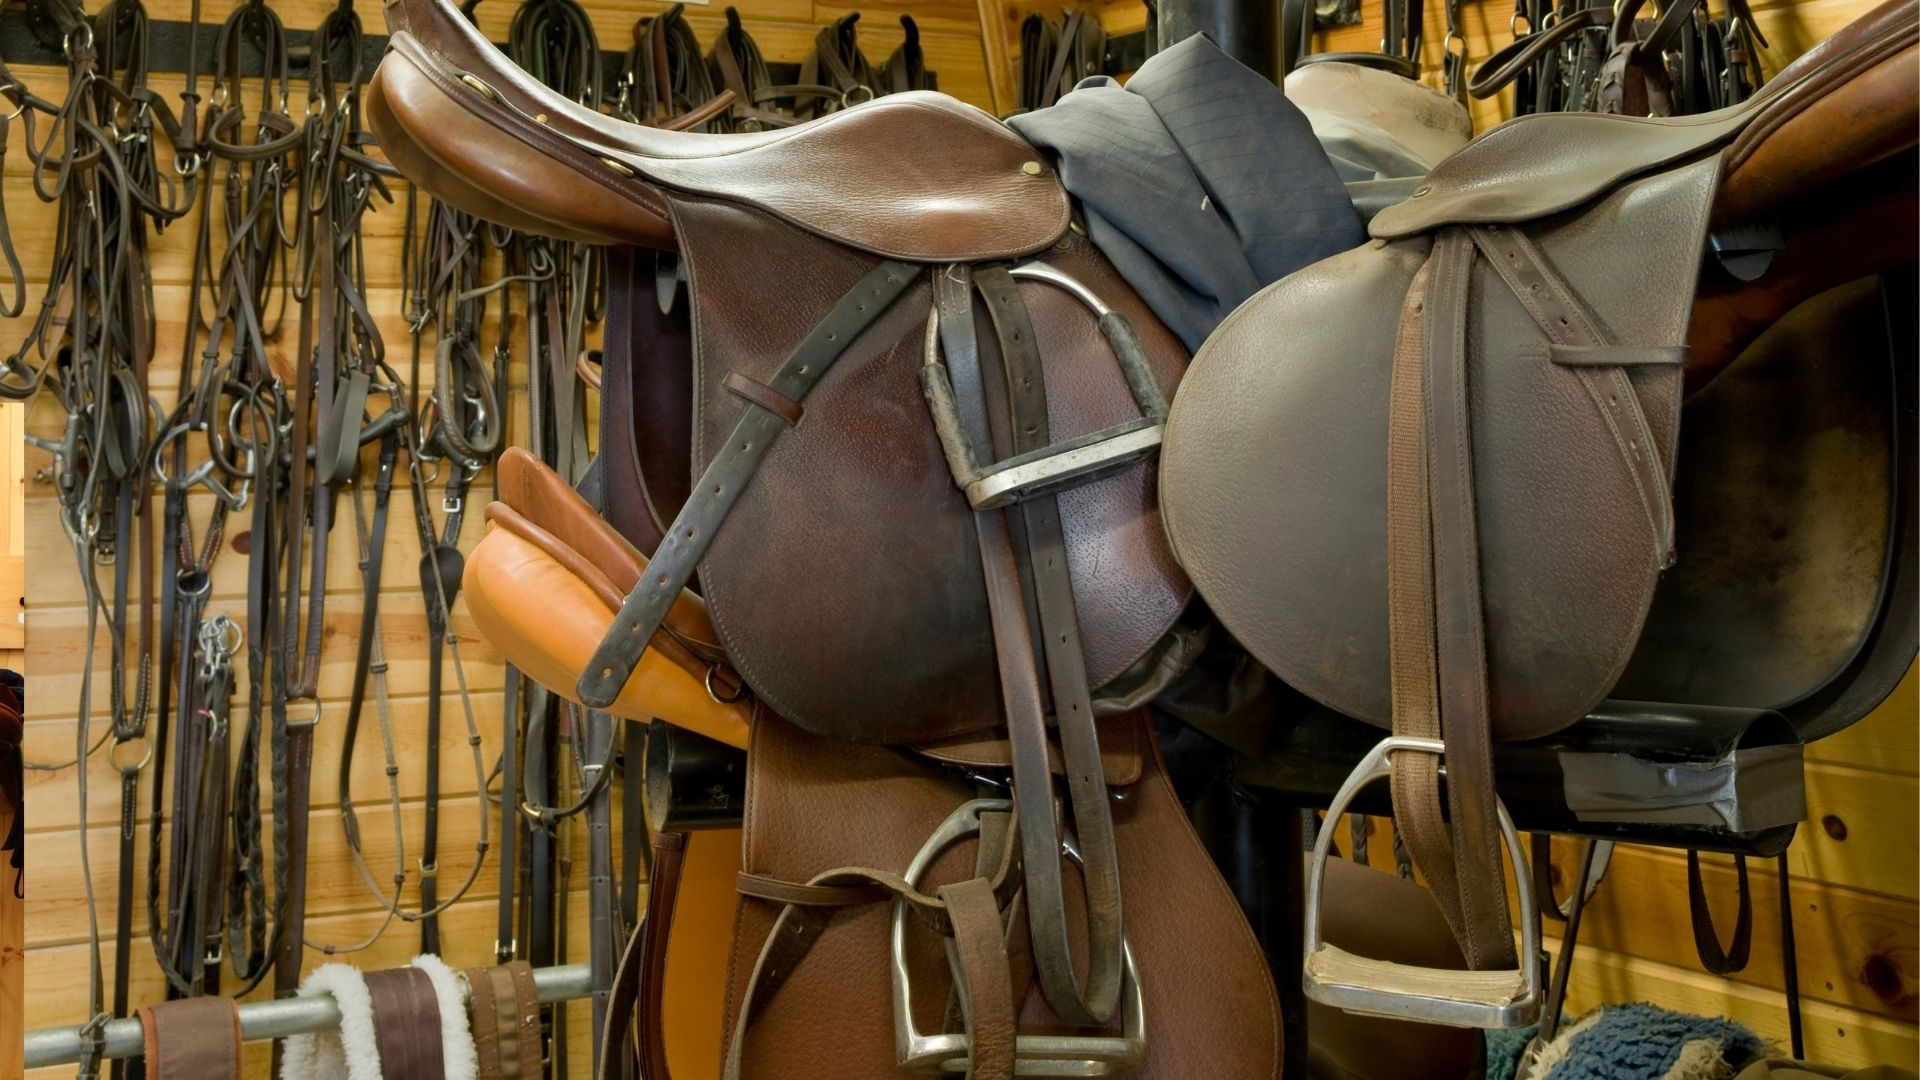 Picture of horse tack.